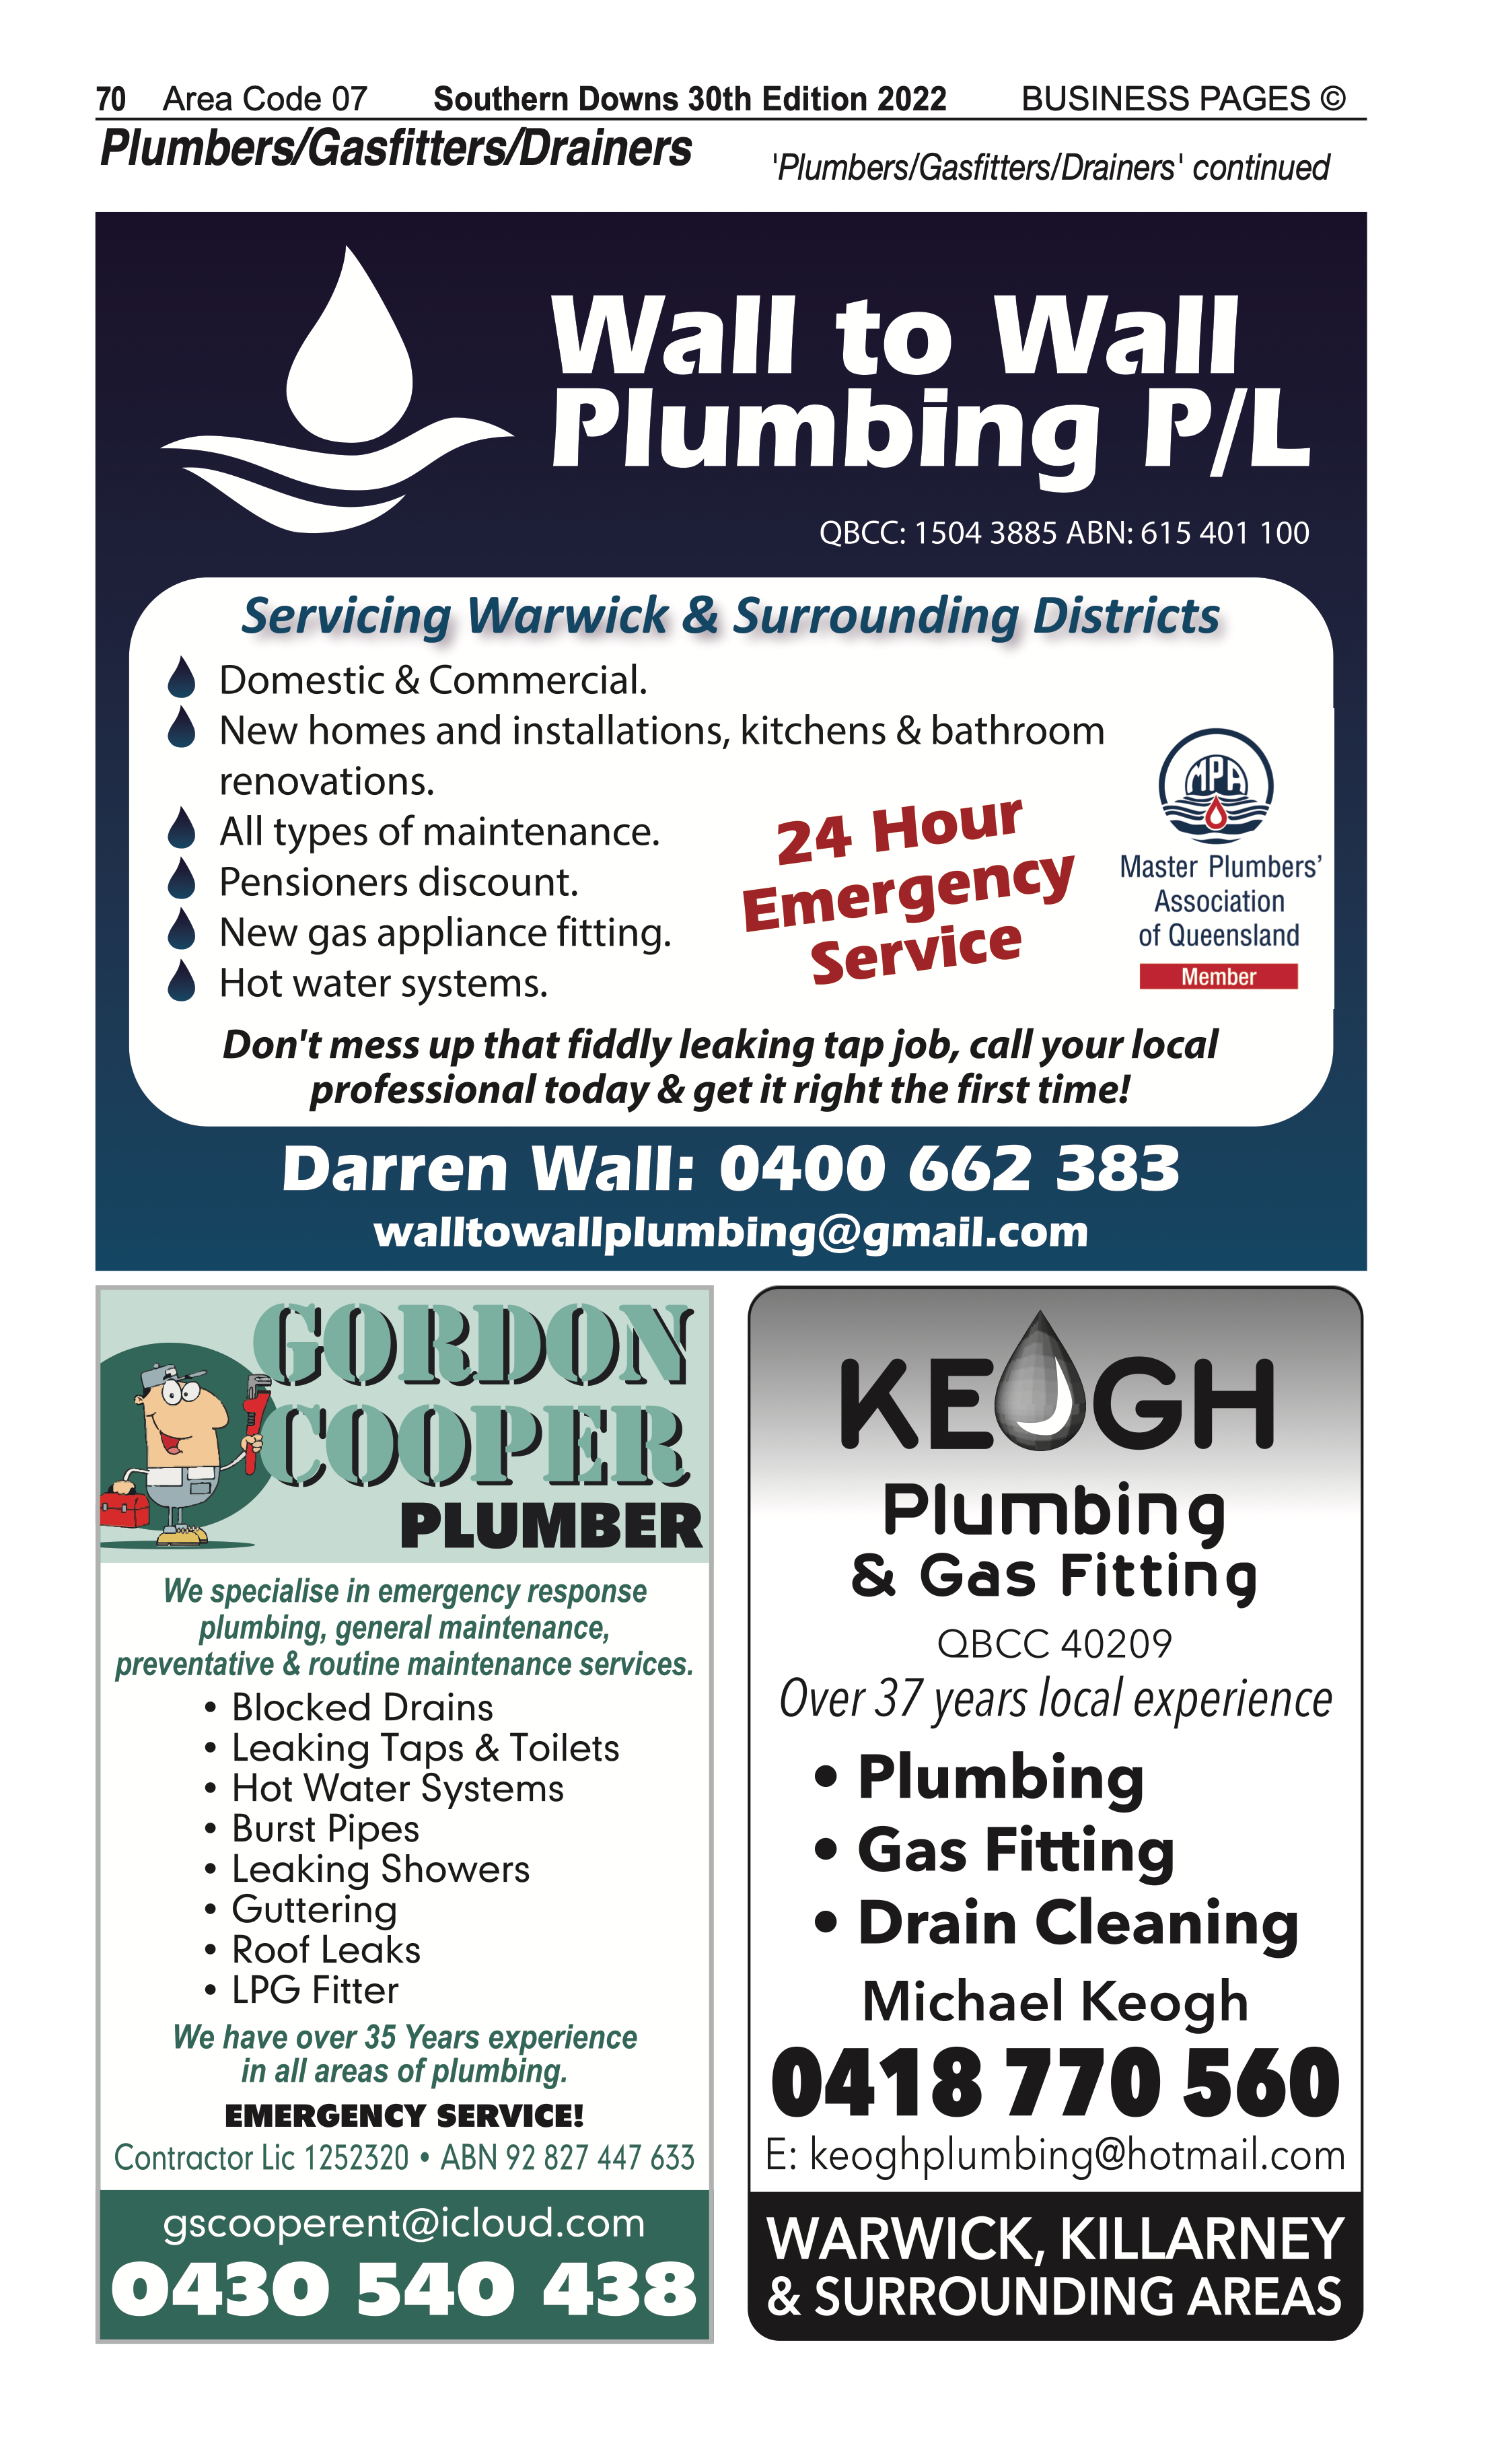 Albion St Auto Centre | Motor – Mufflers, Exhausts in Warwick | PBezy Pocket Books local directories - page 70